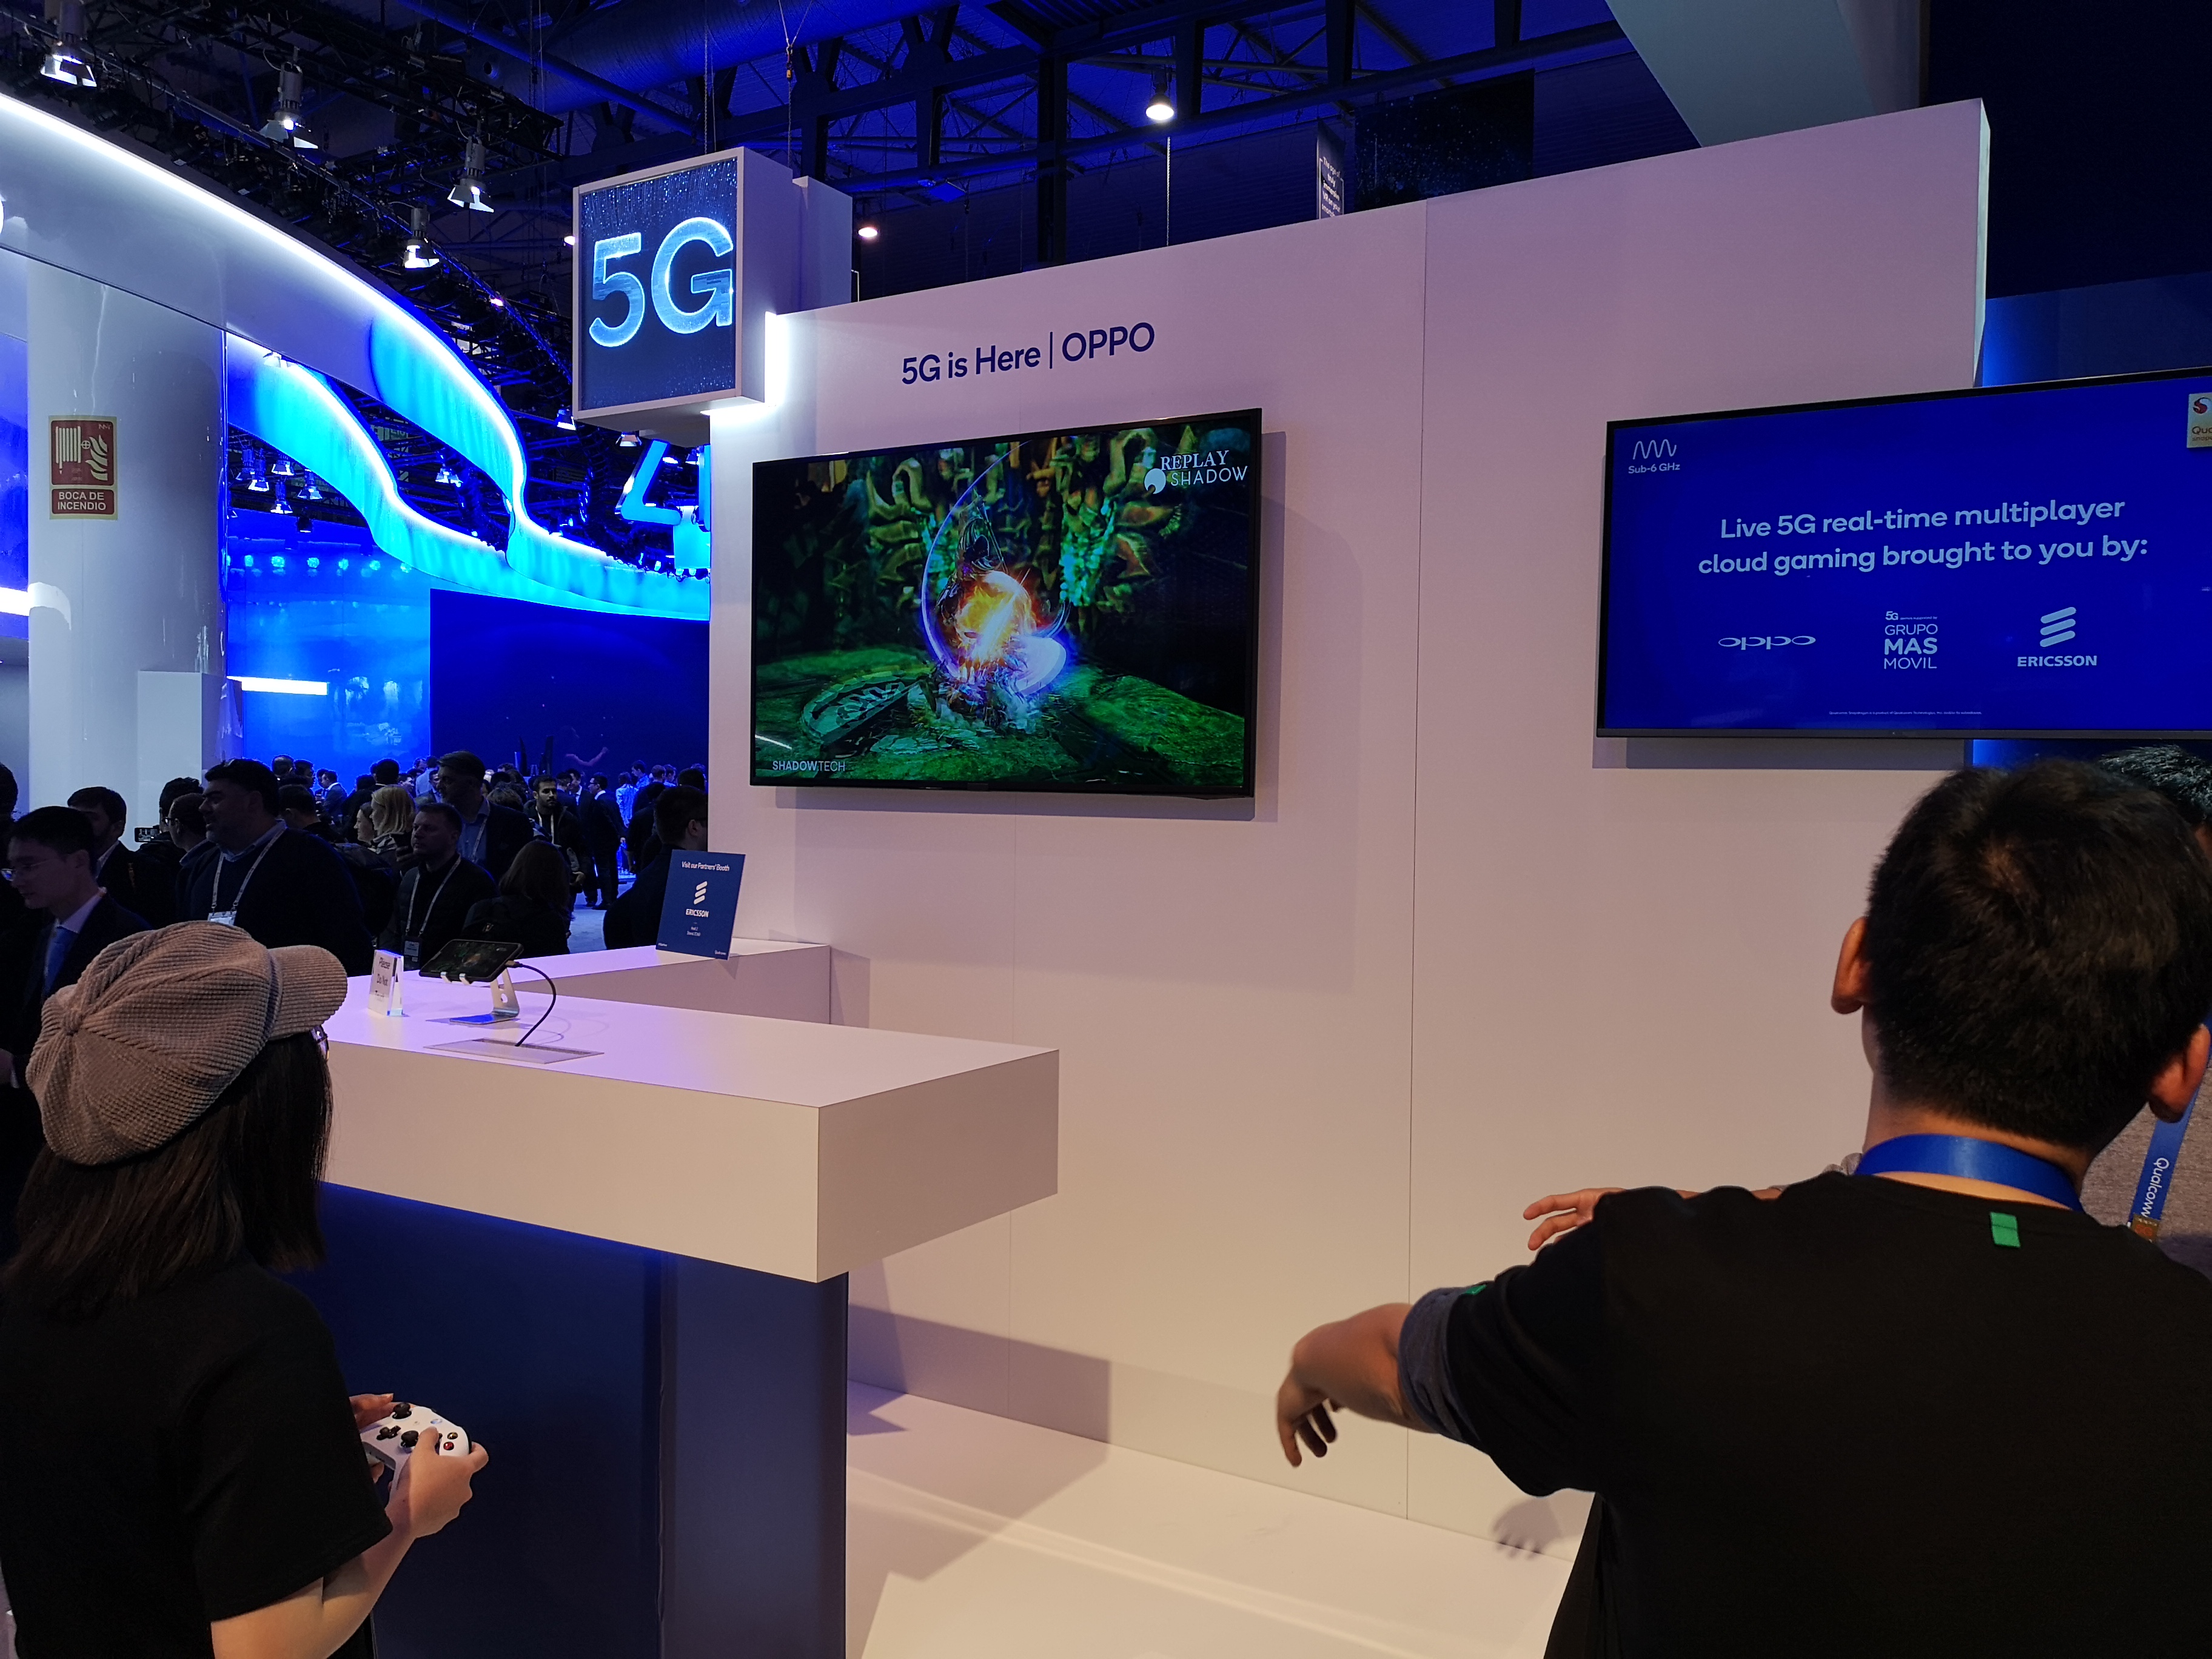 4c8112159cf8 VR and cloud gaming frenzy seizes MWC as 5G hype builds